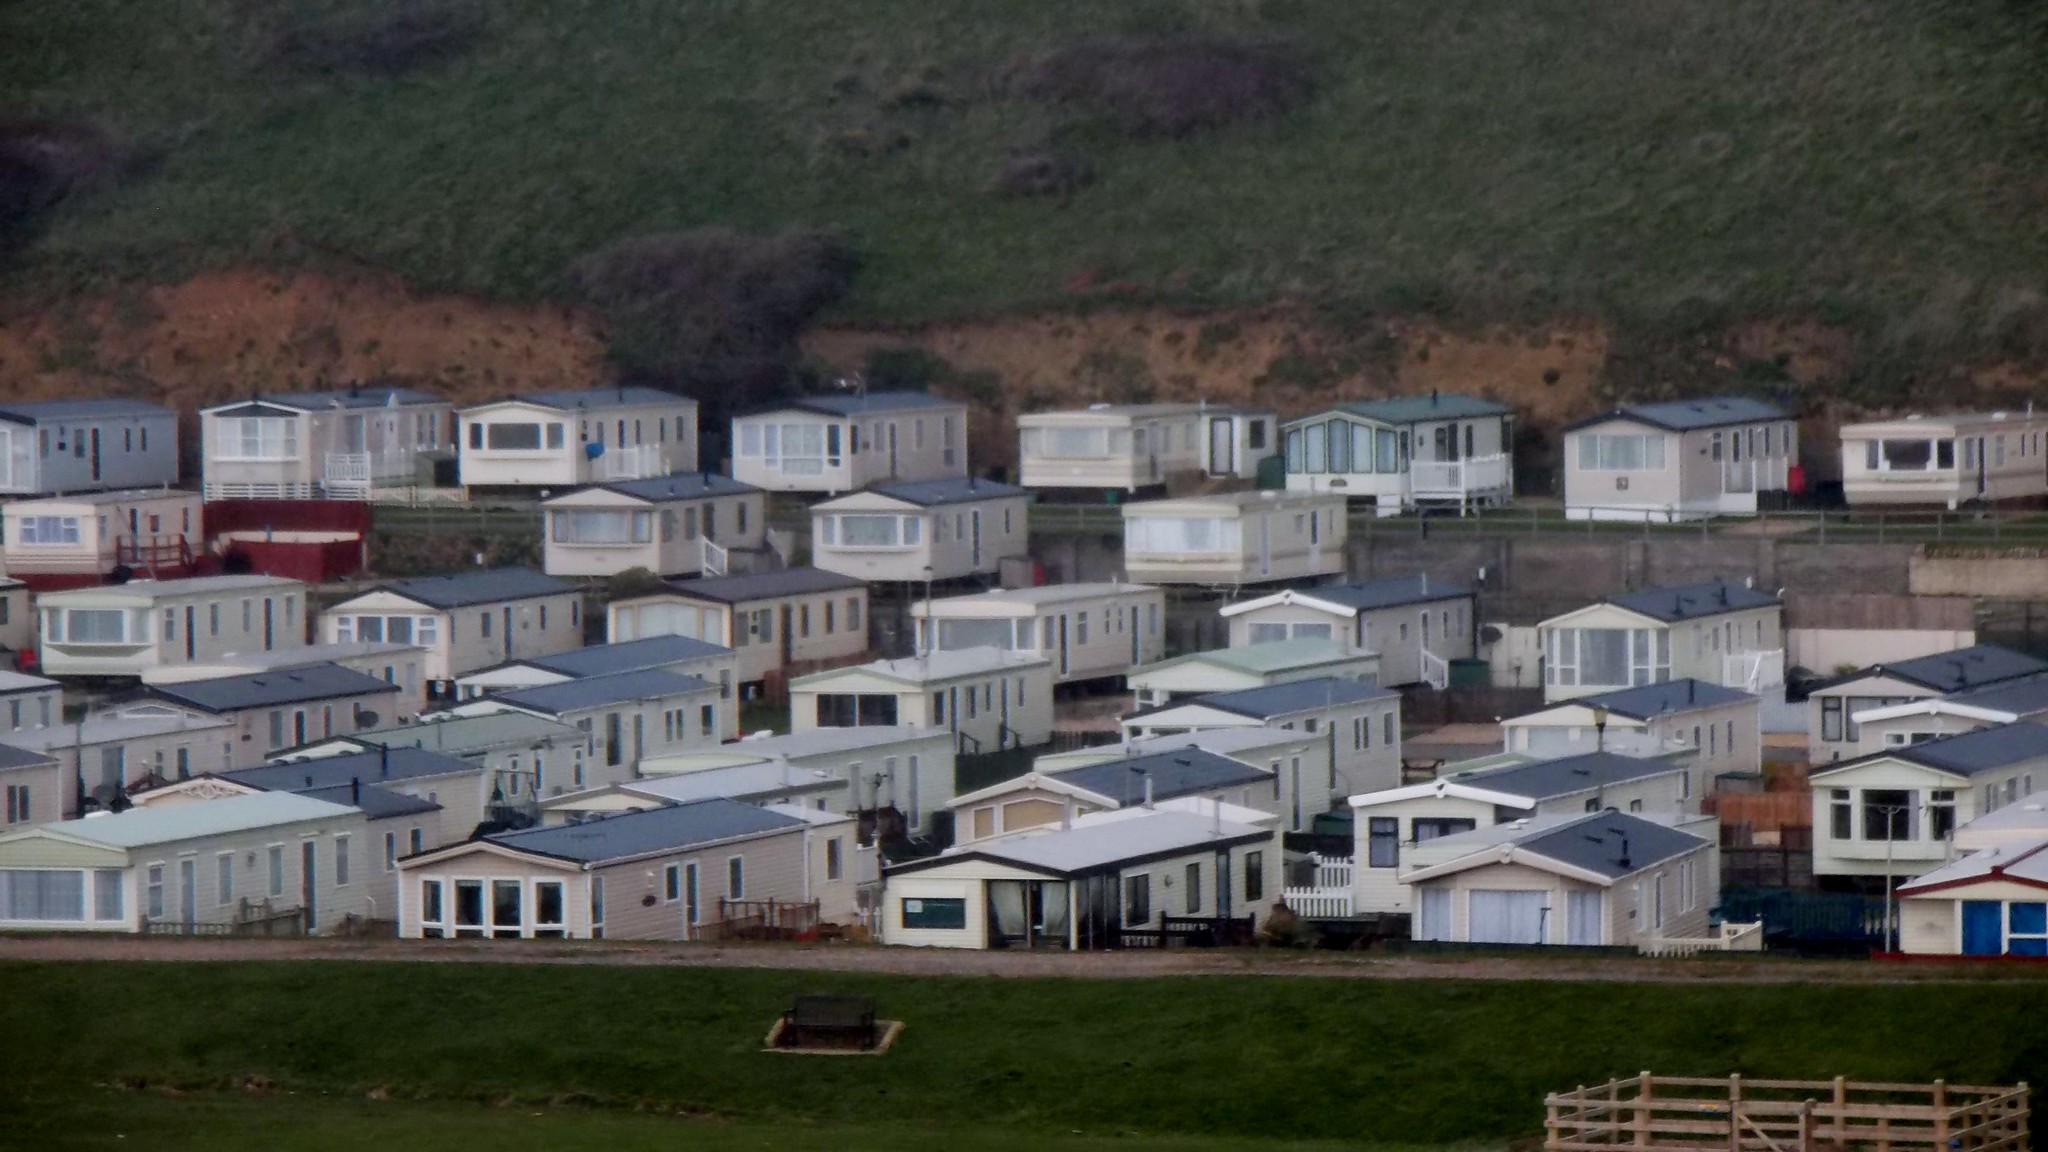 Bill of rights for residents of manufactured housing introduced in Congress